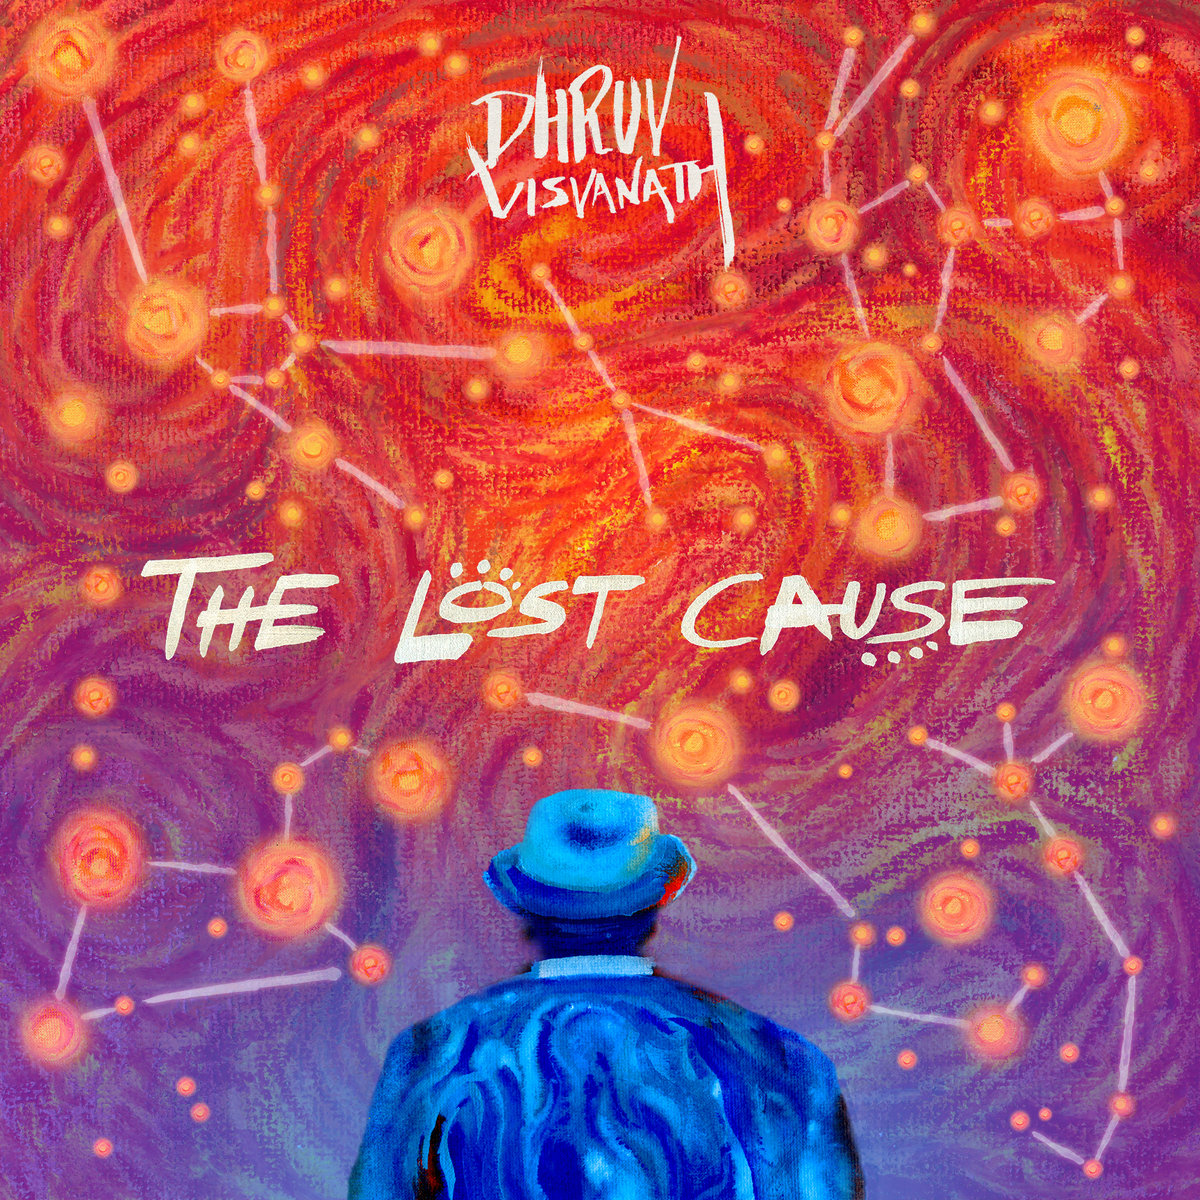 The Lost Cause - Dhruv Visvanath